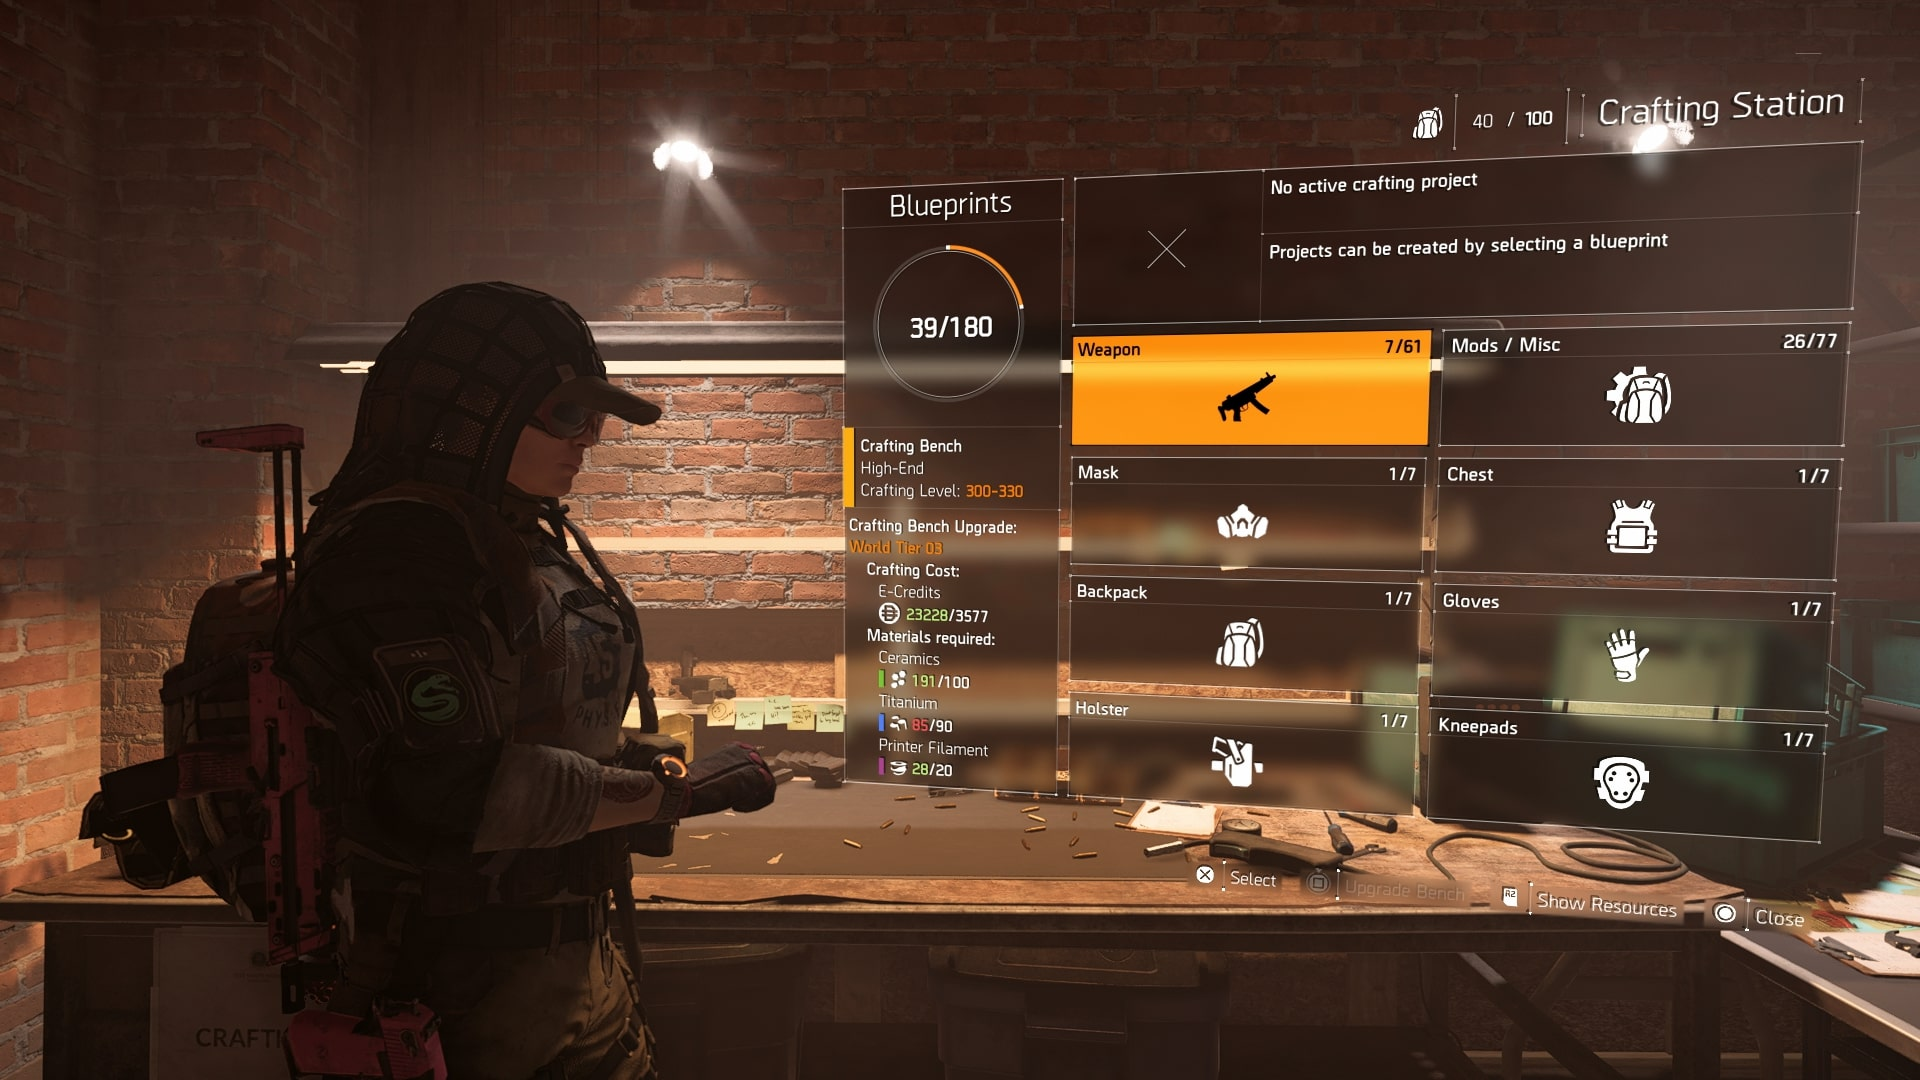 The Division 2 Printer Filament How To Get Printer Filament And Upgrade Your Crafting Bench In The Division 2 Usgamer